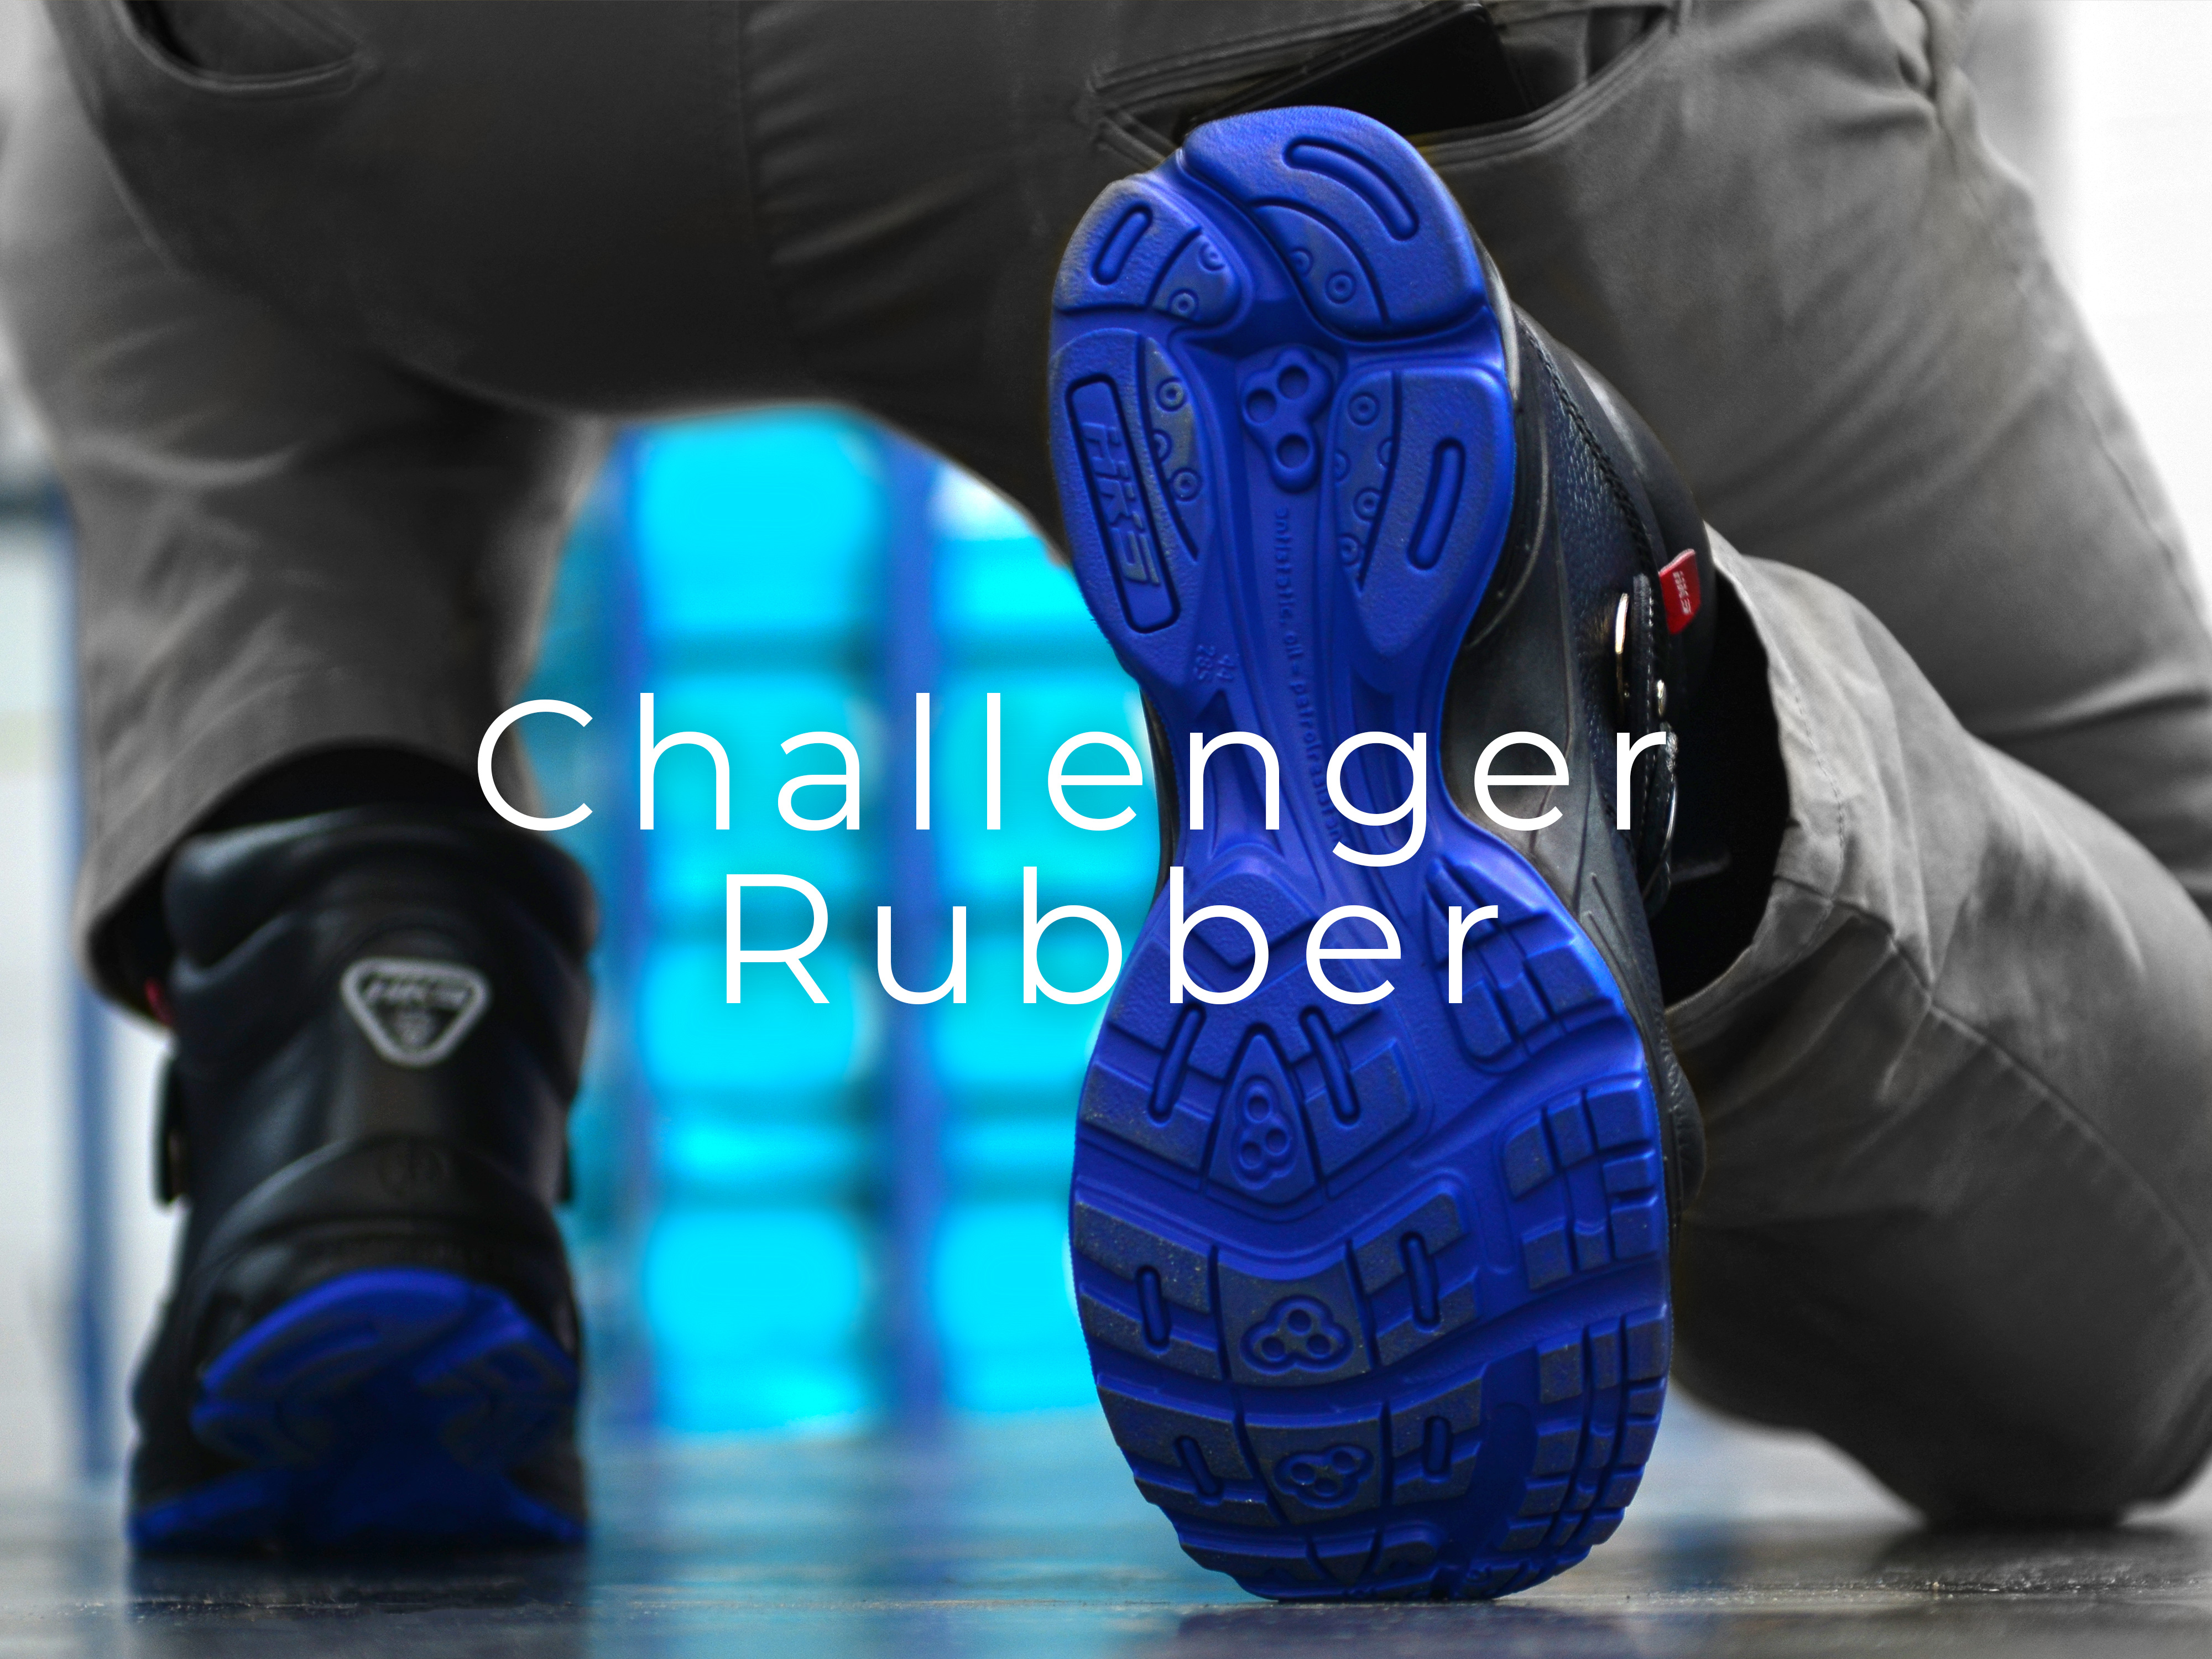 Challenger Rubber